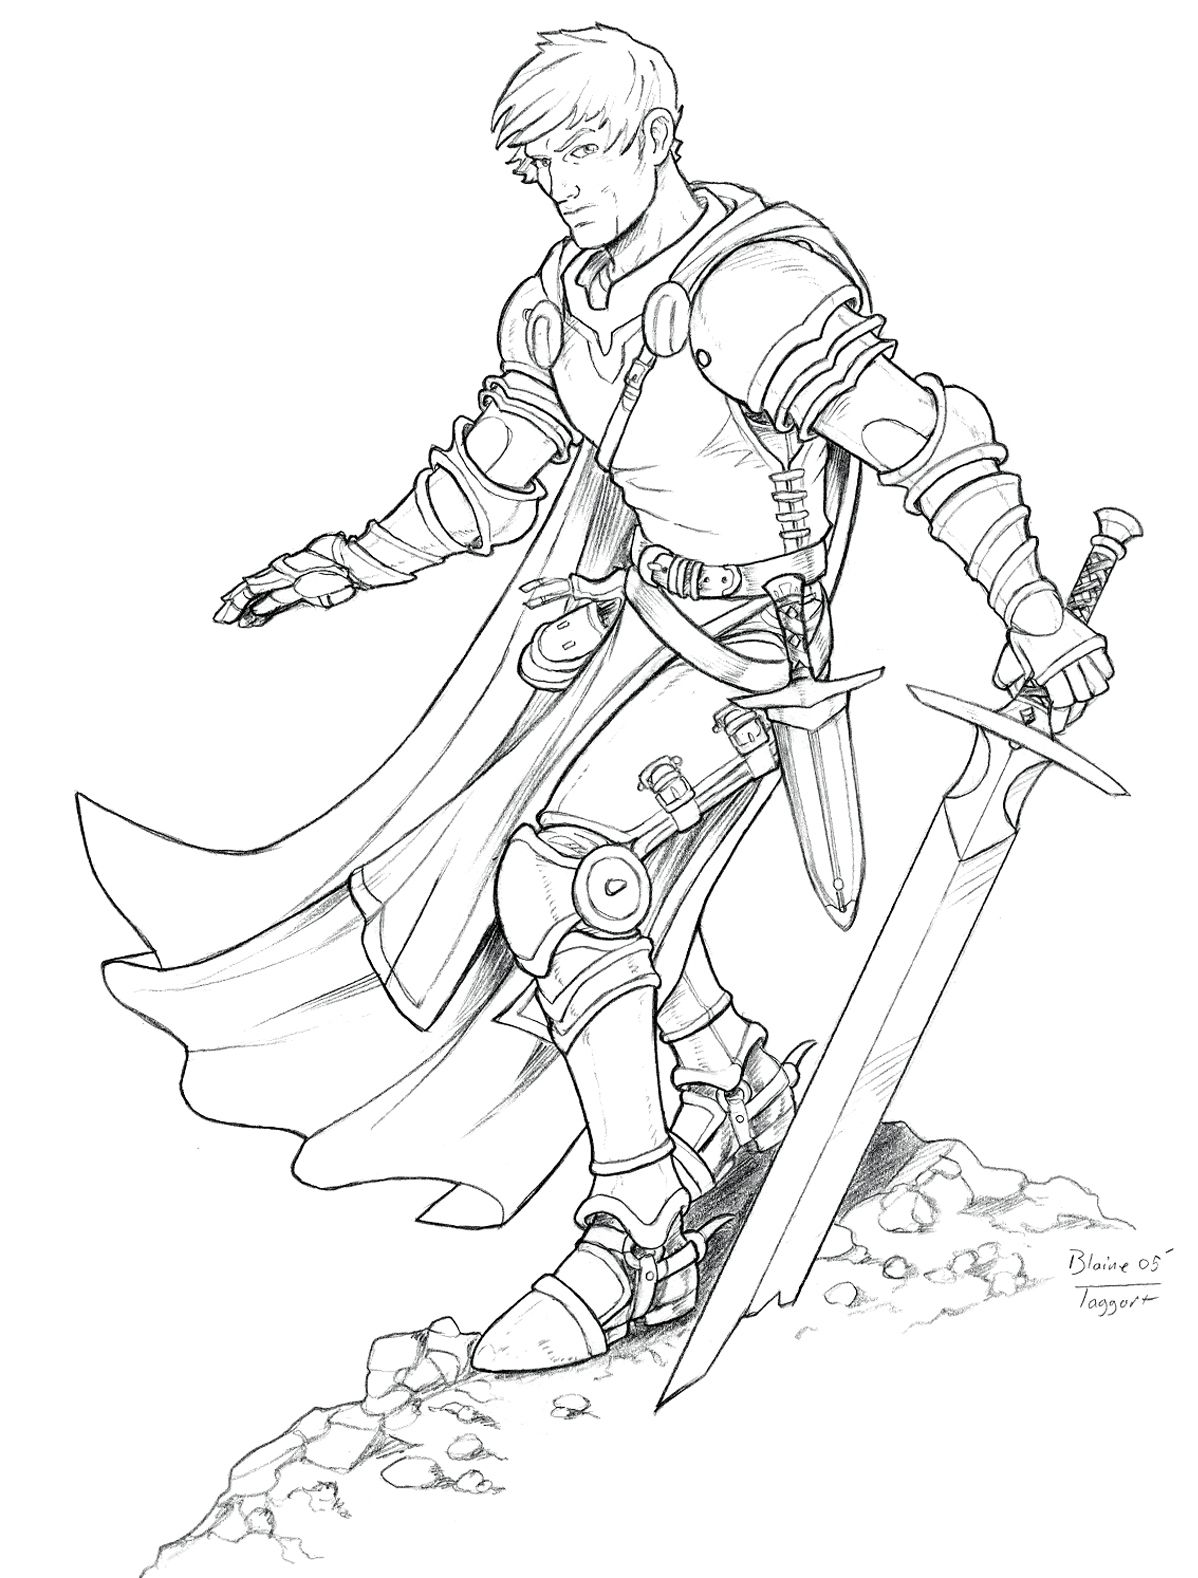 A Young Knight By Staino Jpg 1198 1578 Knight Drawing Princess Coloring Pages Character Design Male